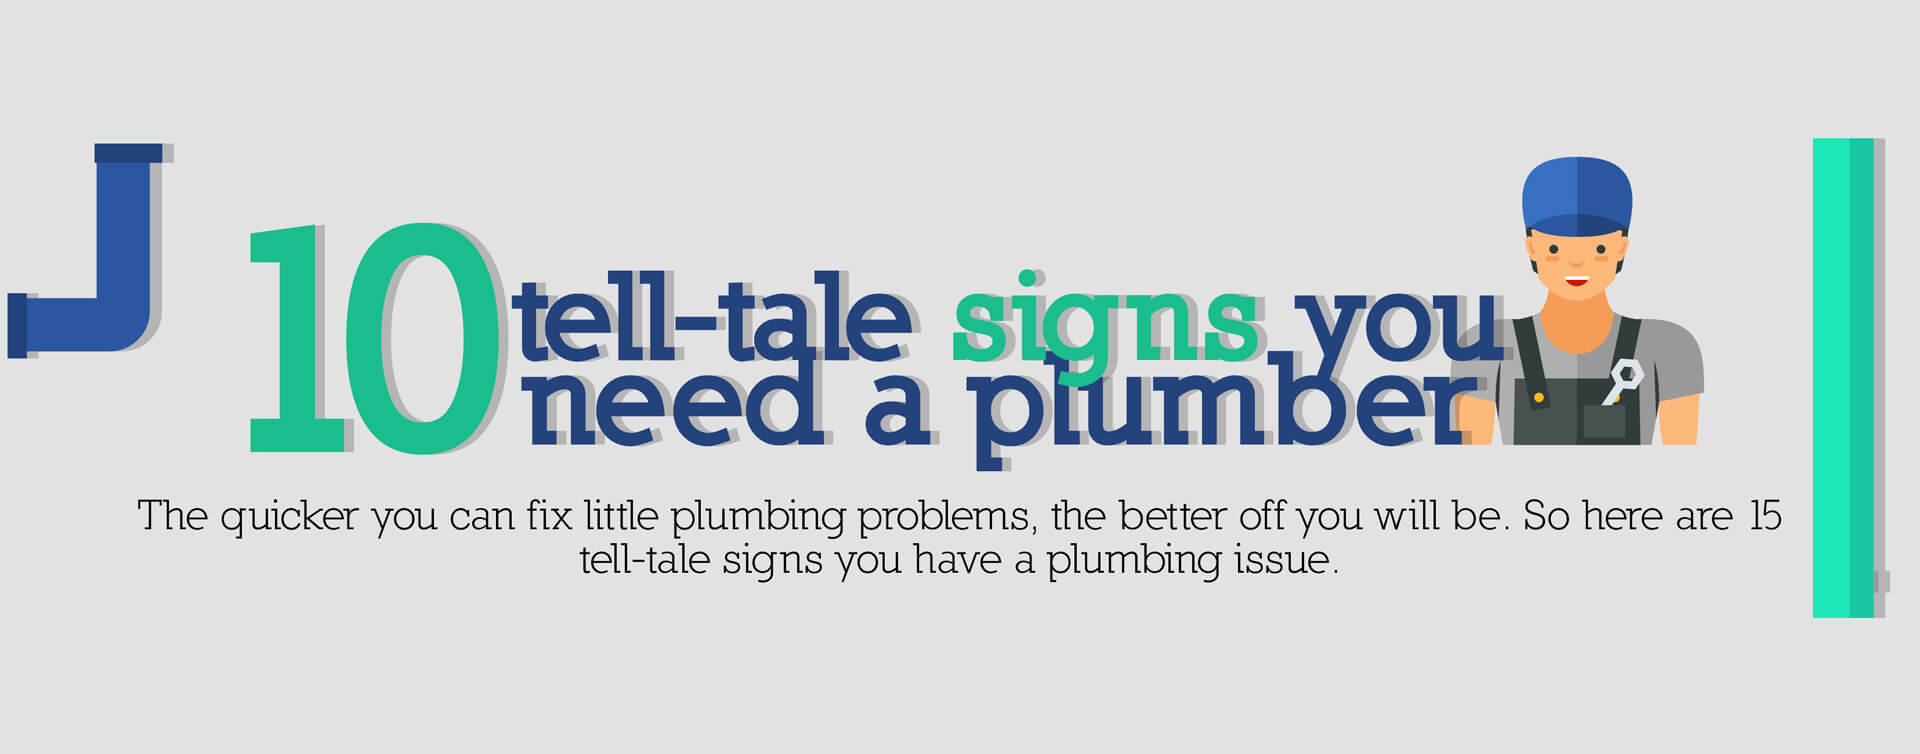 10 tell tale signs you need a plumber banner